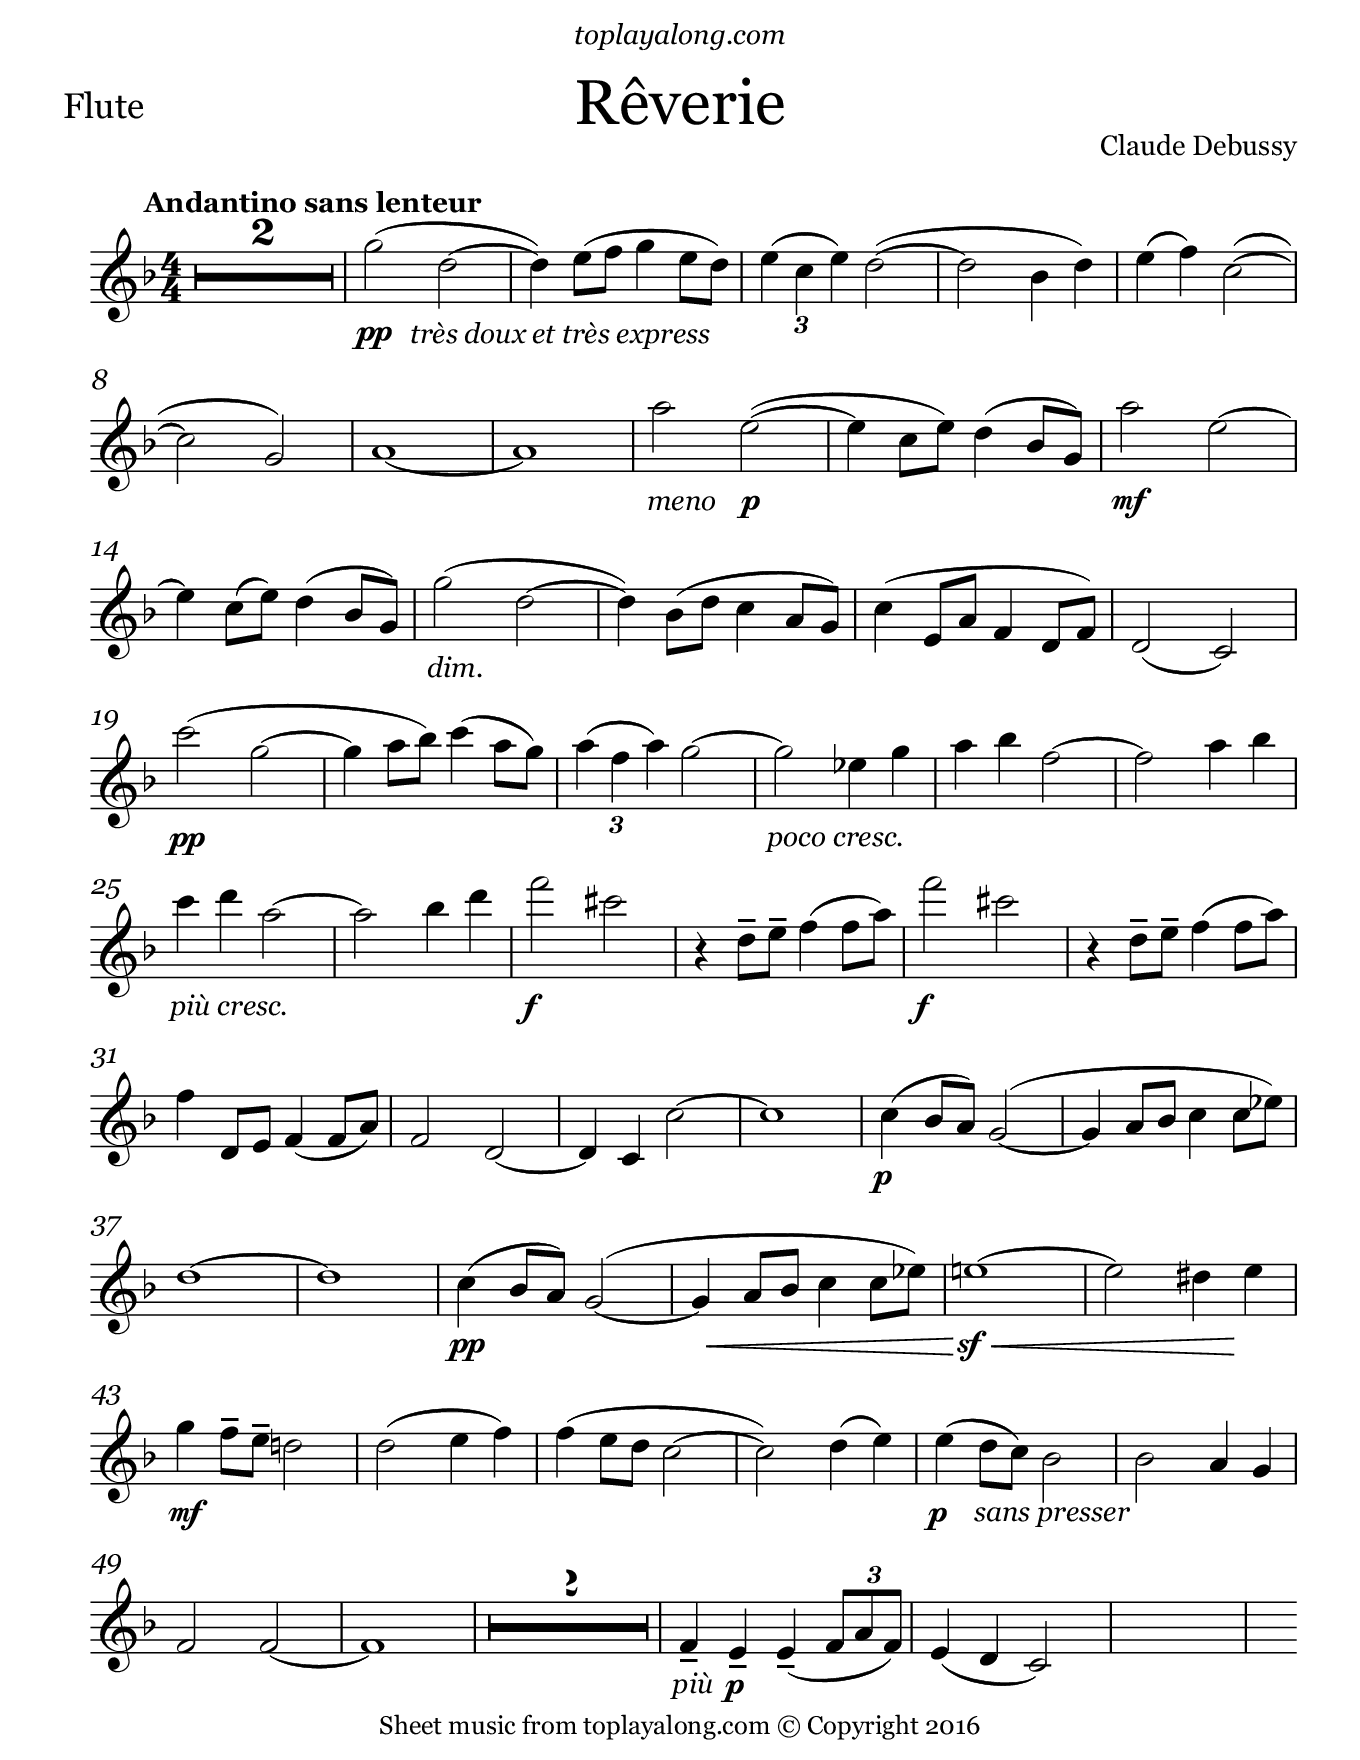 Rêverie by Debussy. Sheet music for Flute, page 1.